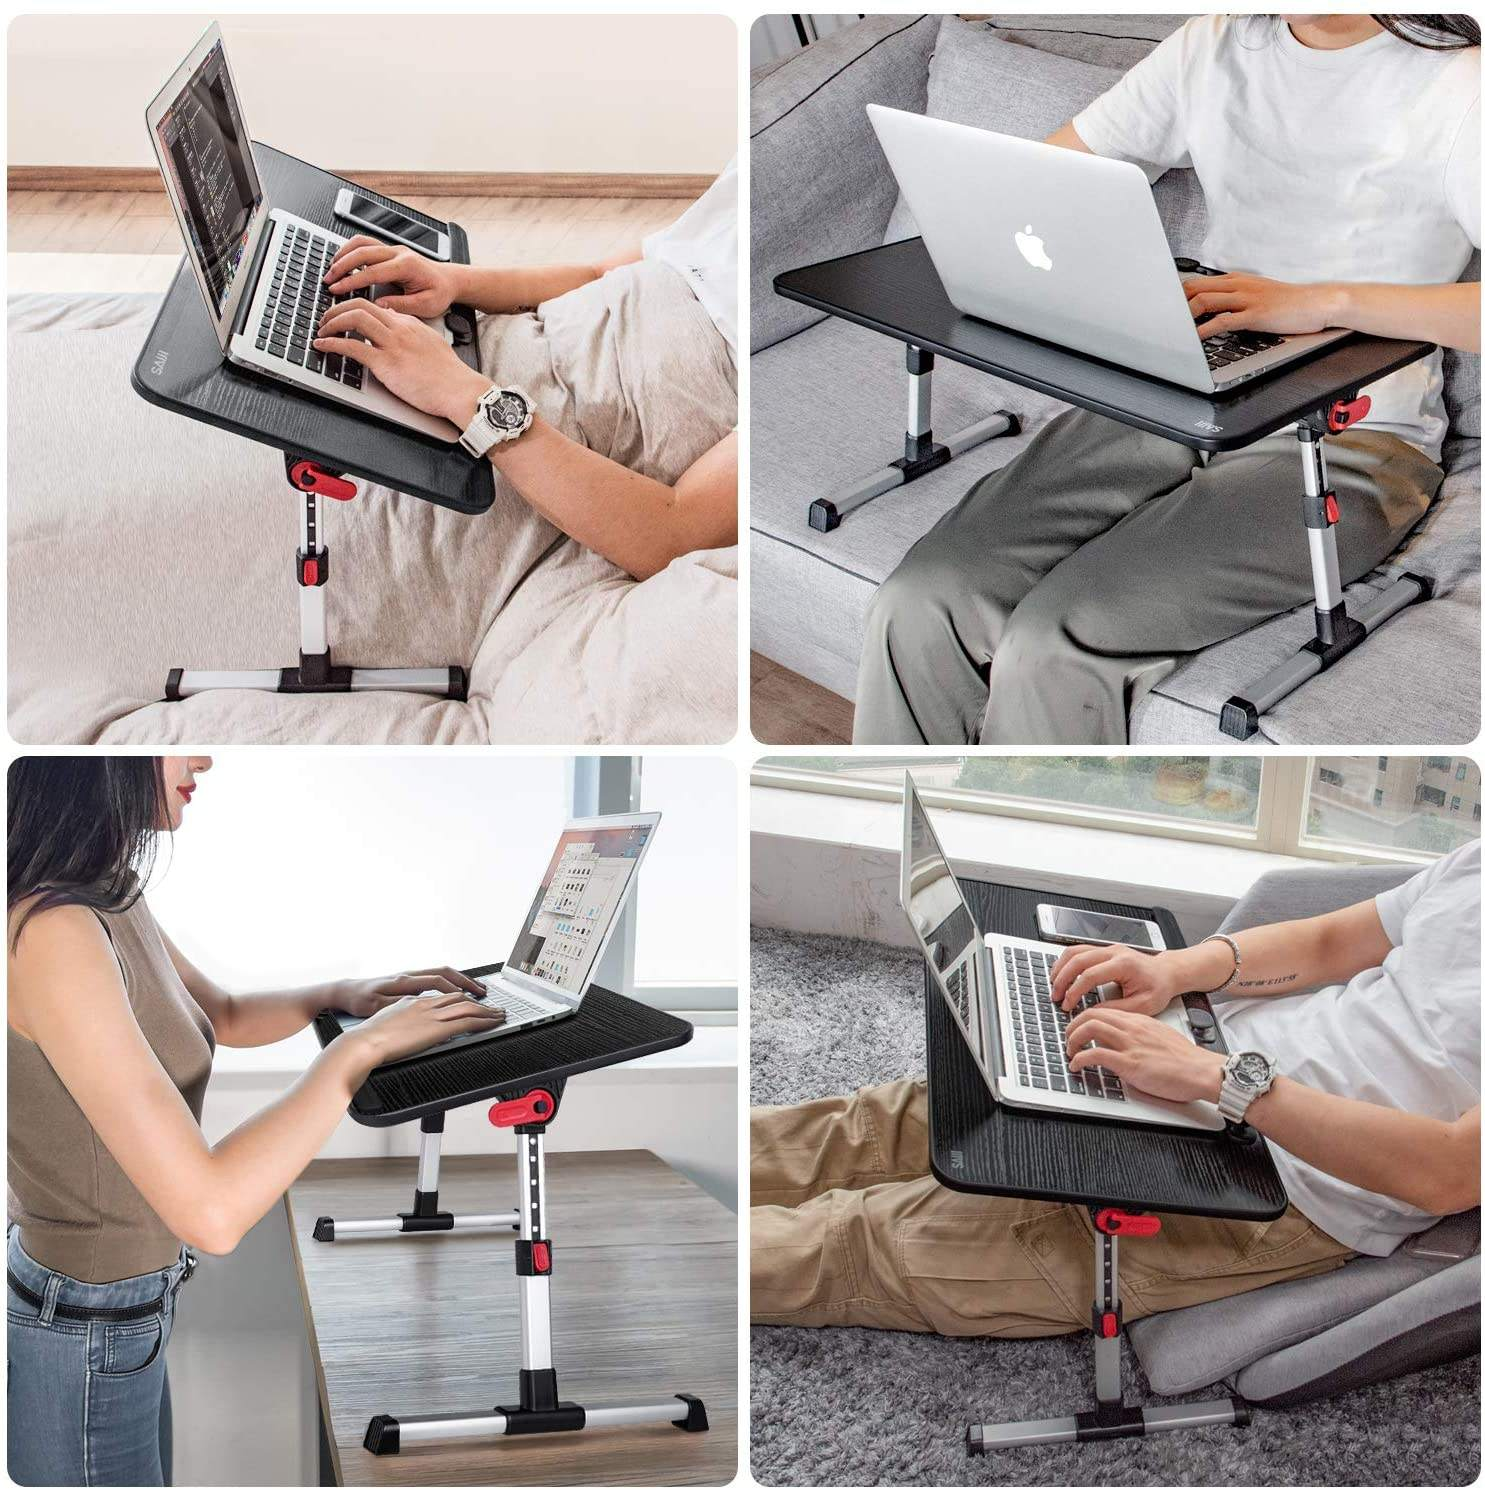 Wideny Foldable Aluminum Laptop Computer Stand with Ajustable Legs for Laptop Bed Tray Table Standing Breakfast Reading Desk